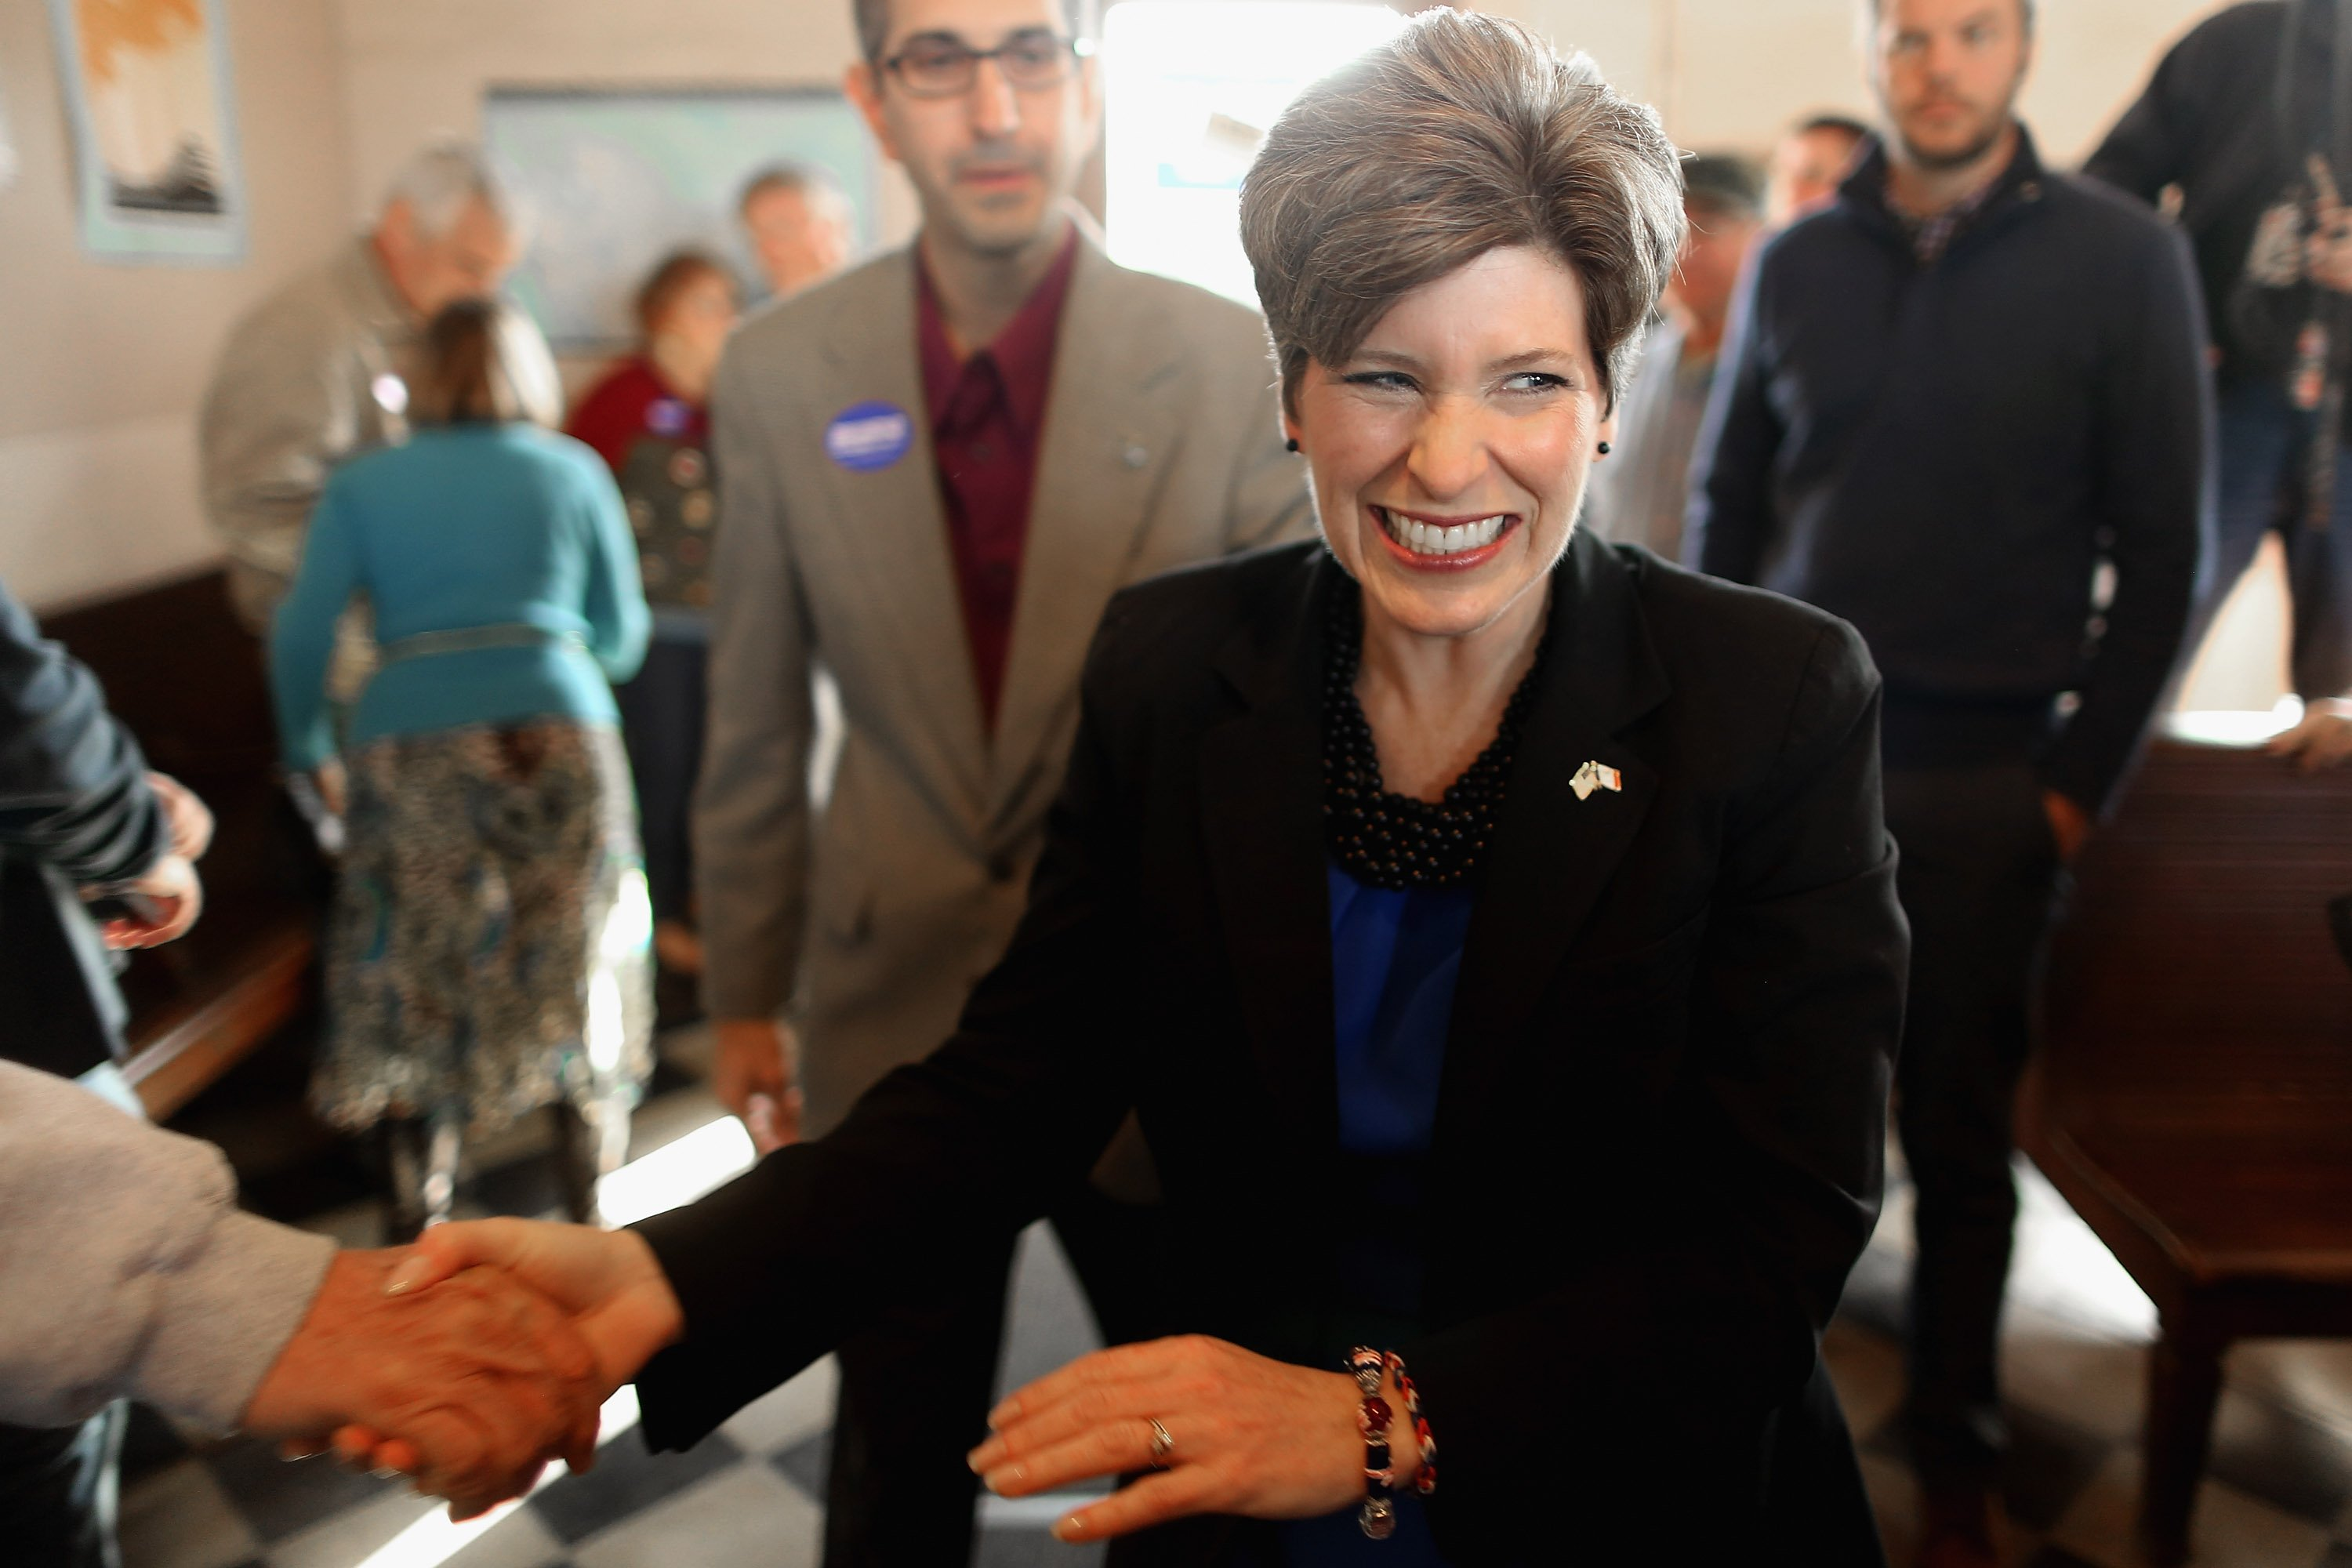 <b>Joni Ernst</b>                                   A Lieutenant Colonel of the Iowa Army National Guard, Ernst has served on the Iowa State Senate since 2004.